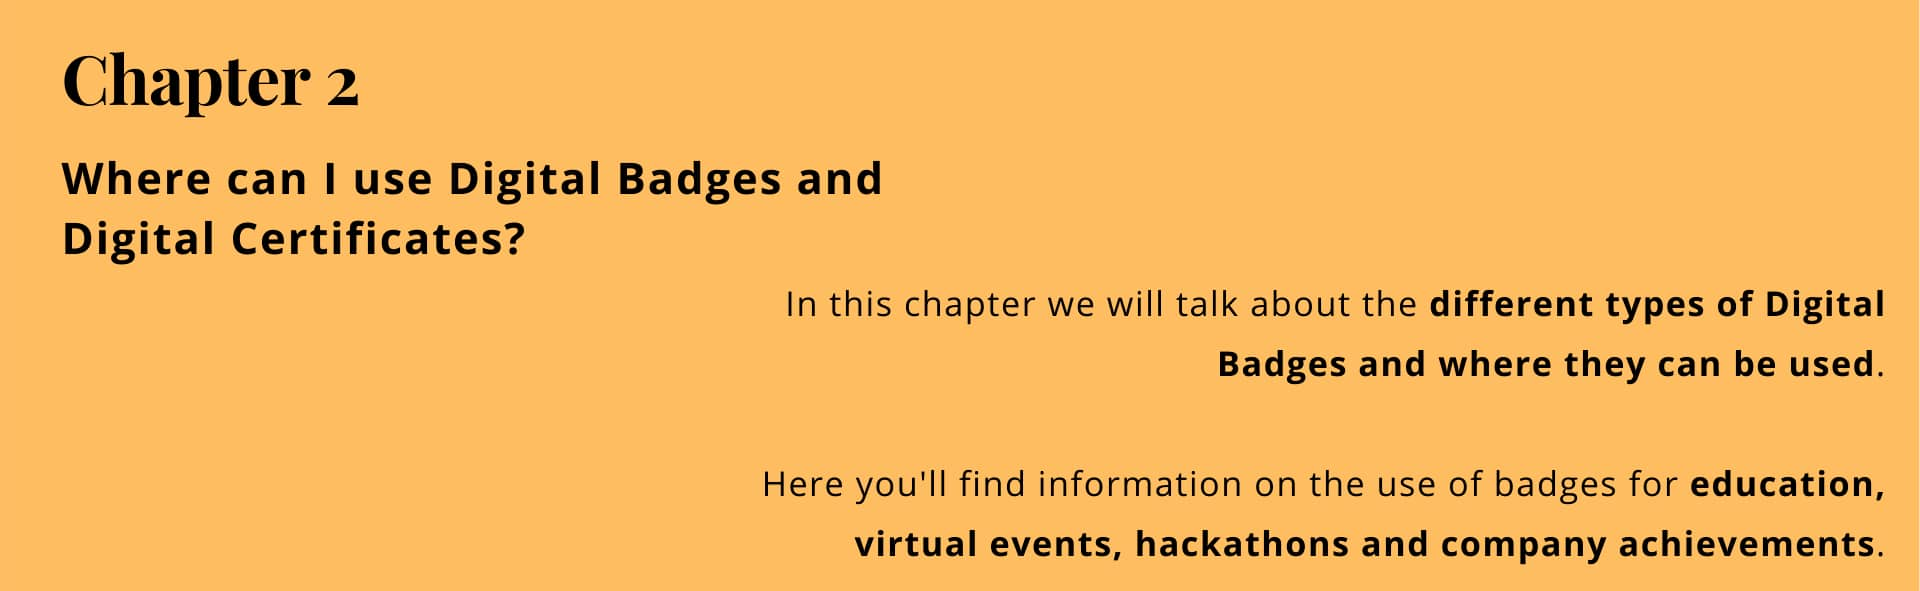 Chapter 2: where can I use digital badges and digital certificates?